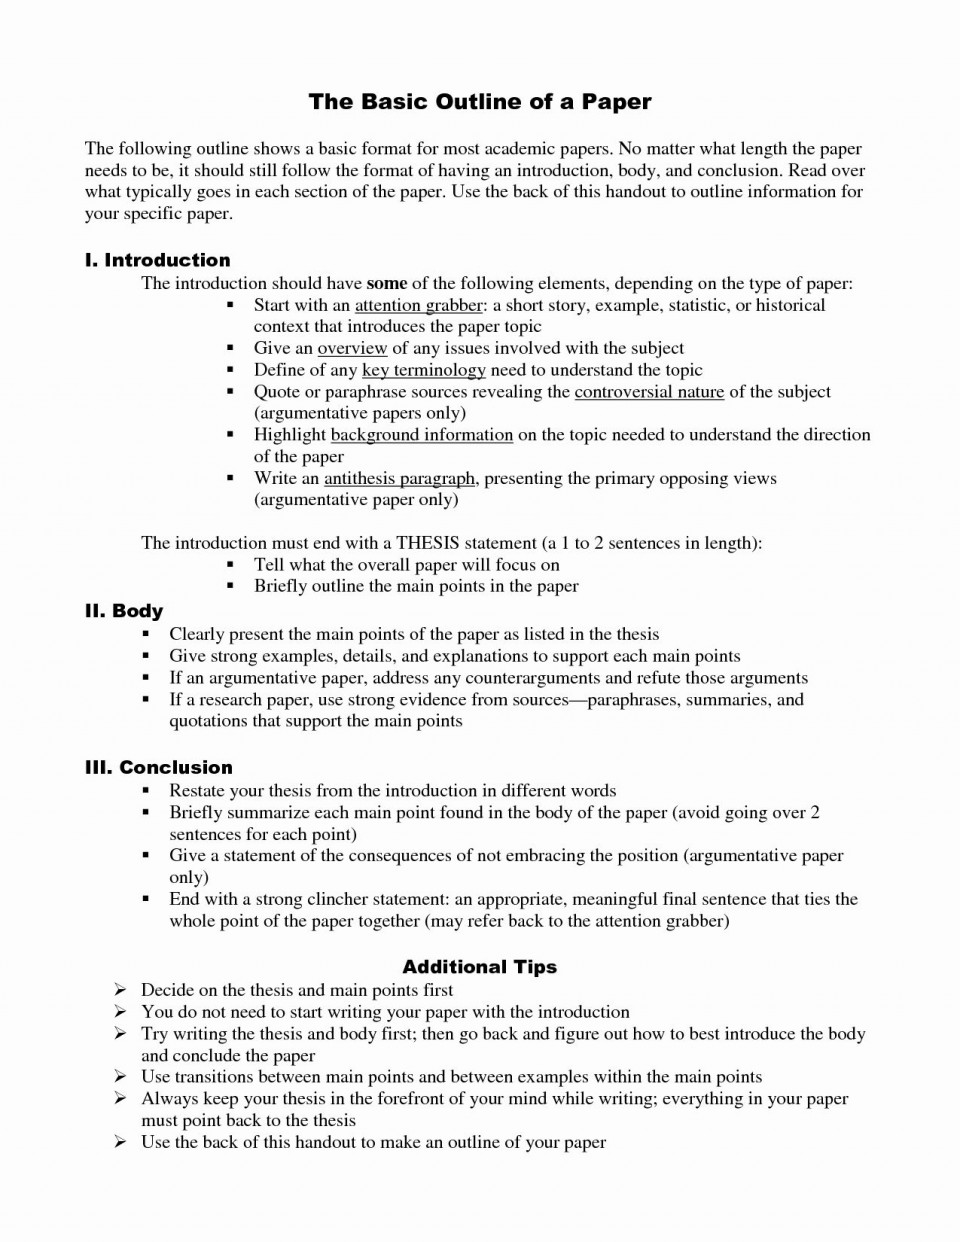 002 Post Traumatic Stress Disorder Research Paper Outline Argumentative Essay On Wondrous Topics 960